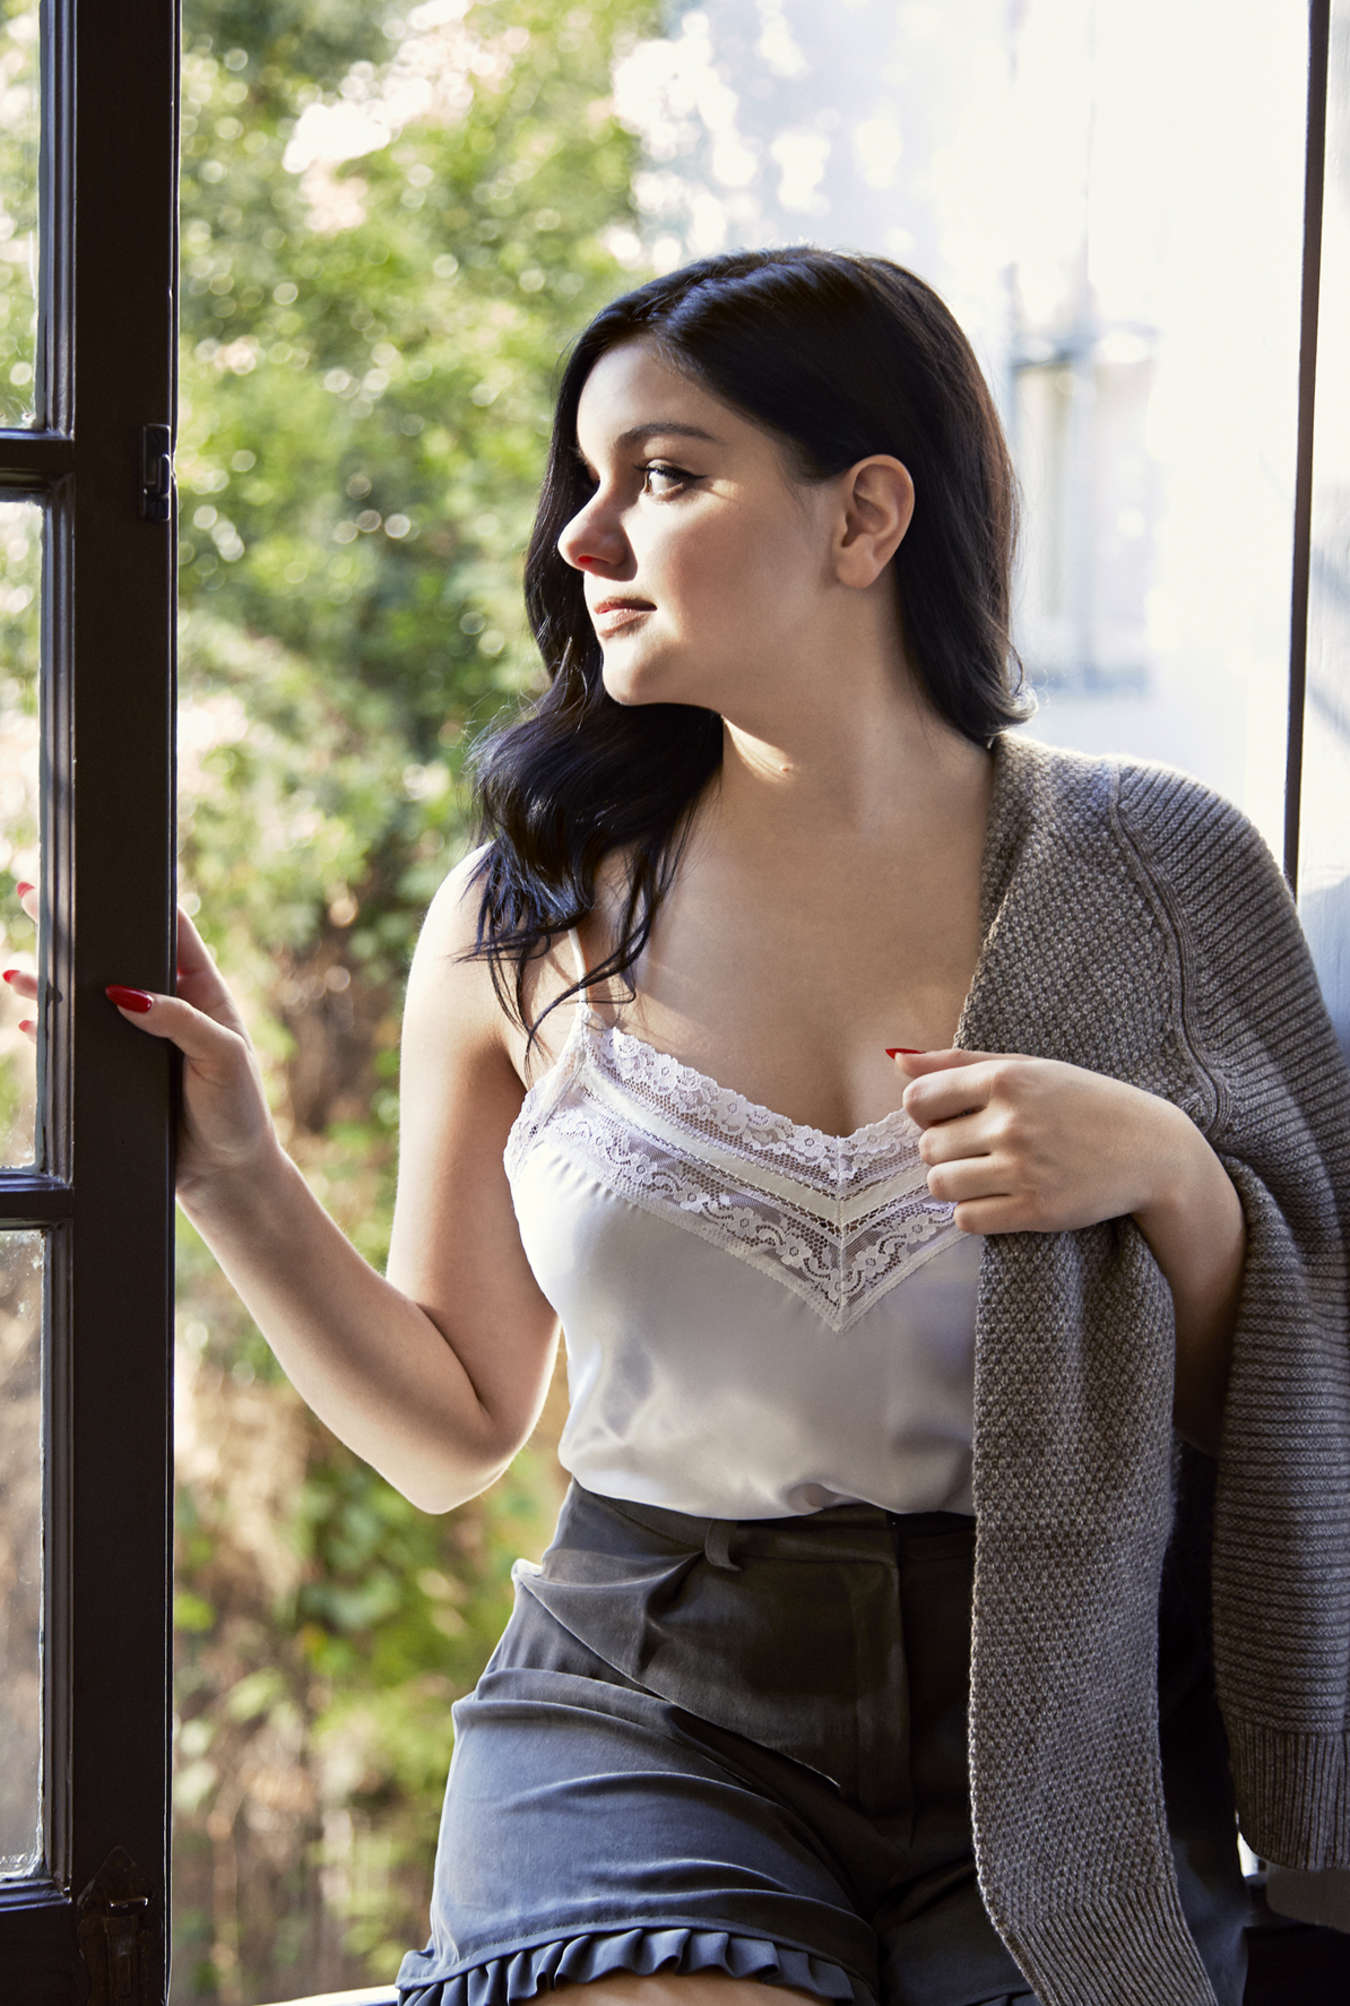 Ariel Winter by Jacqueline Di Milia Photoshoot (February 2016)